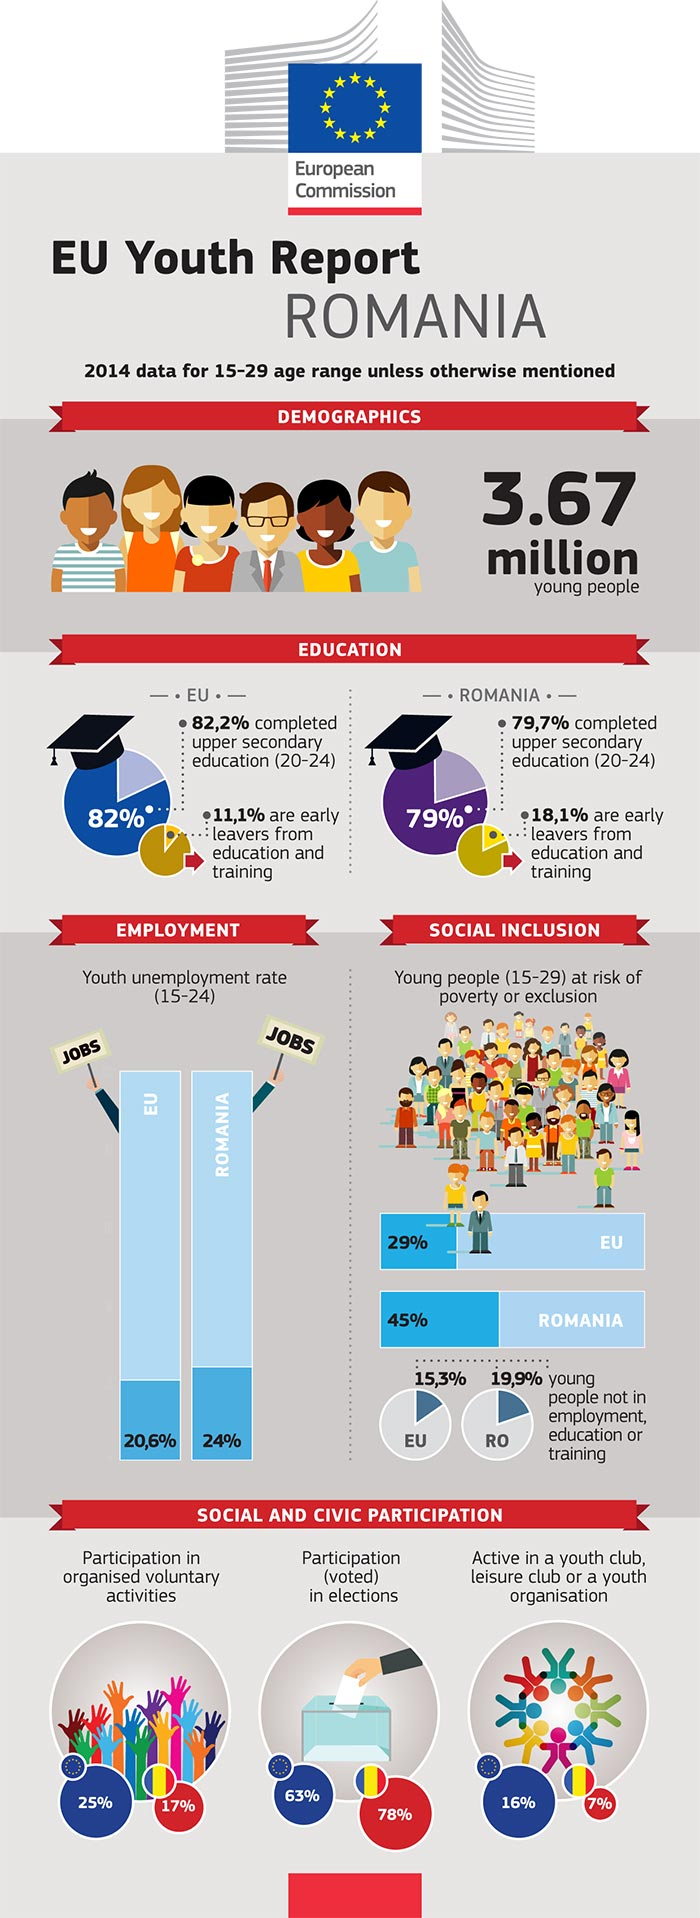 EU Youth Report infographic: Romania